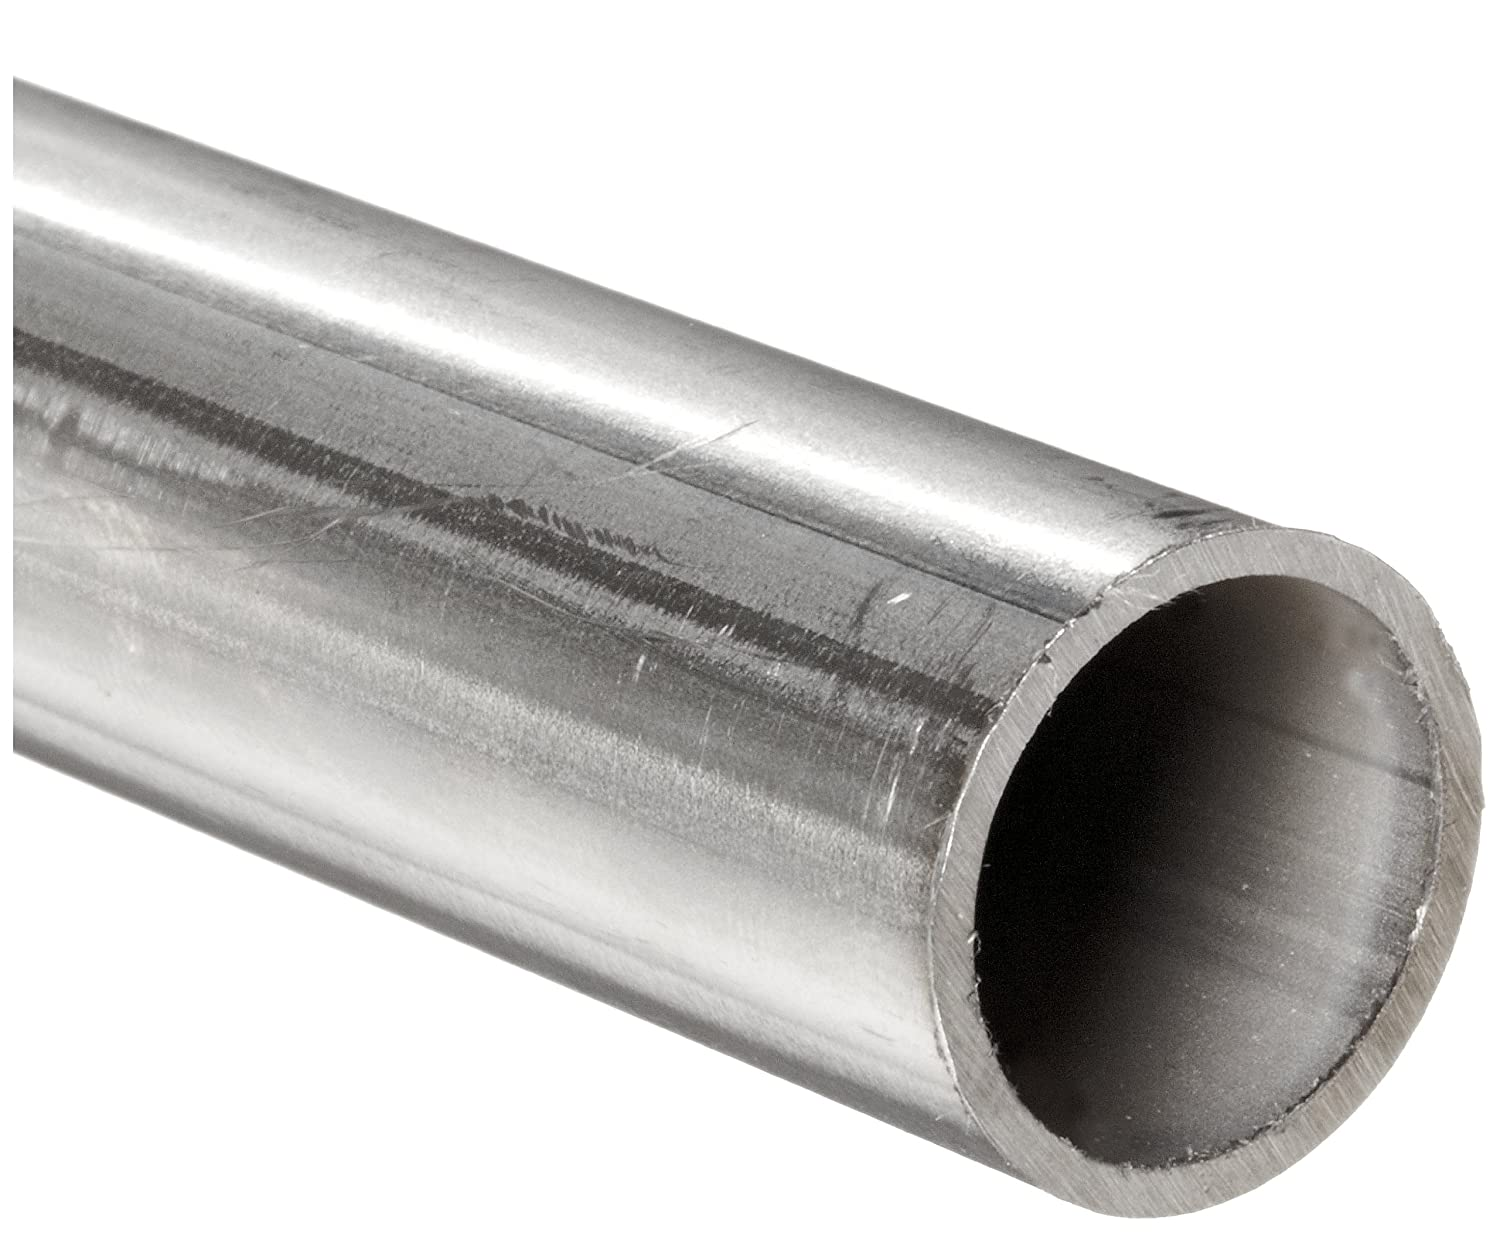 Round Steel Pipes : Stainless steel welded round tubing quot od